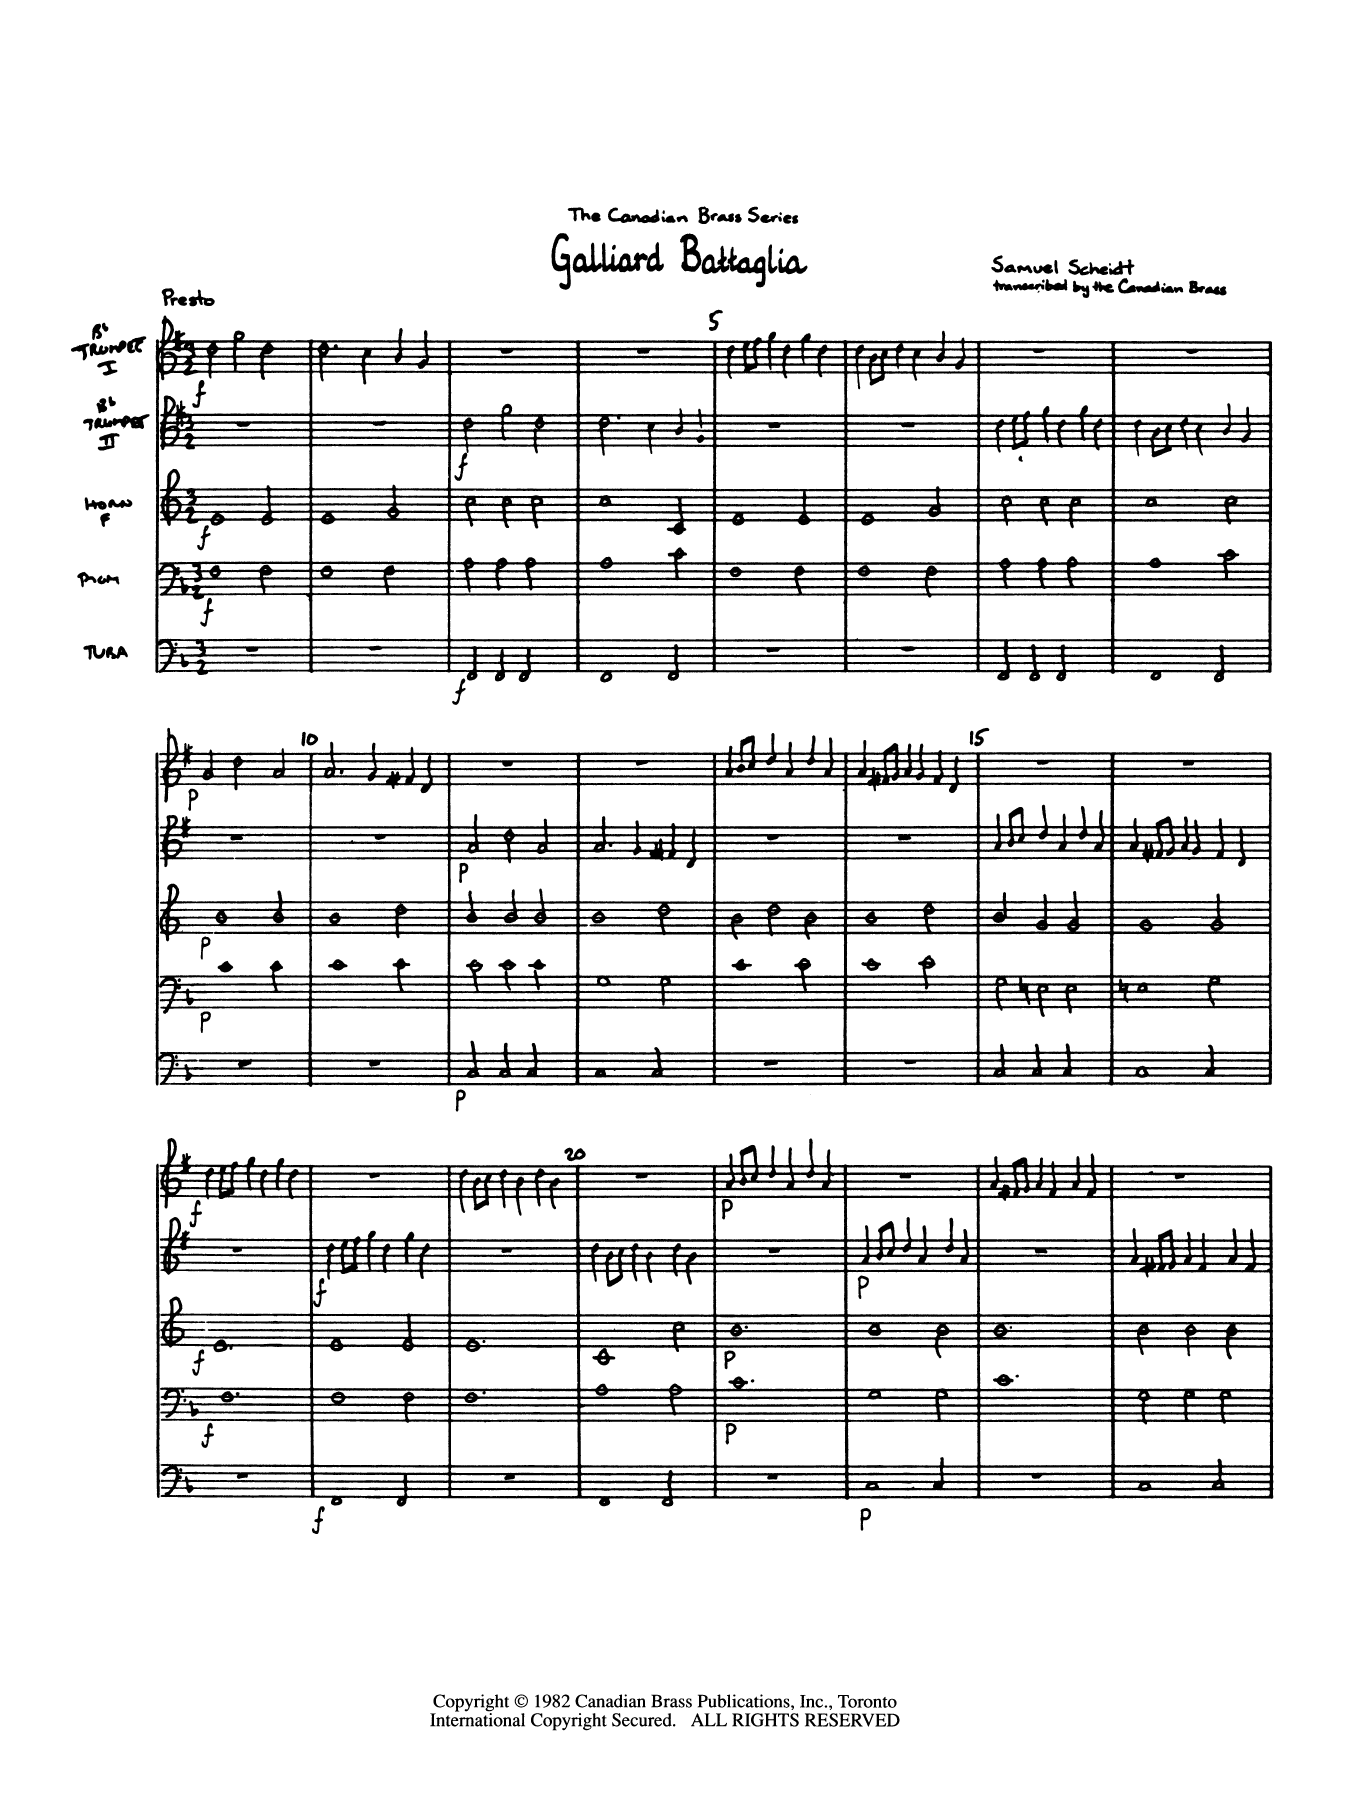 Galliard Battaglia (COMPLETE) sheet music for brass quintet by Canadian Brass and Samuel Scheidt. Score Image Preview.